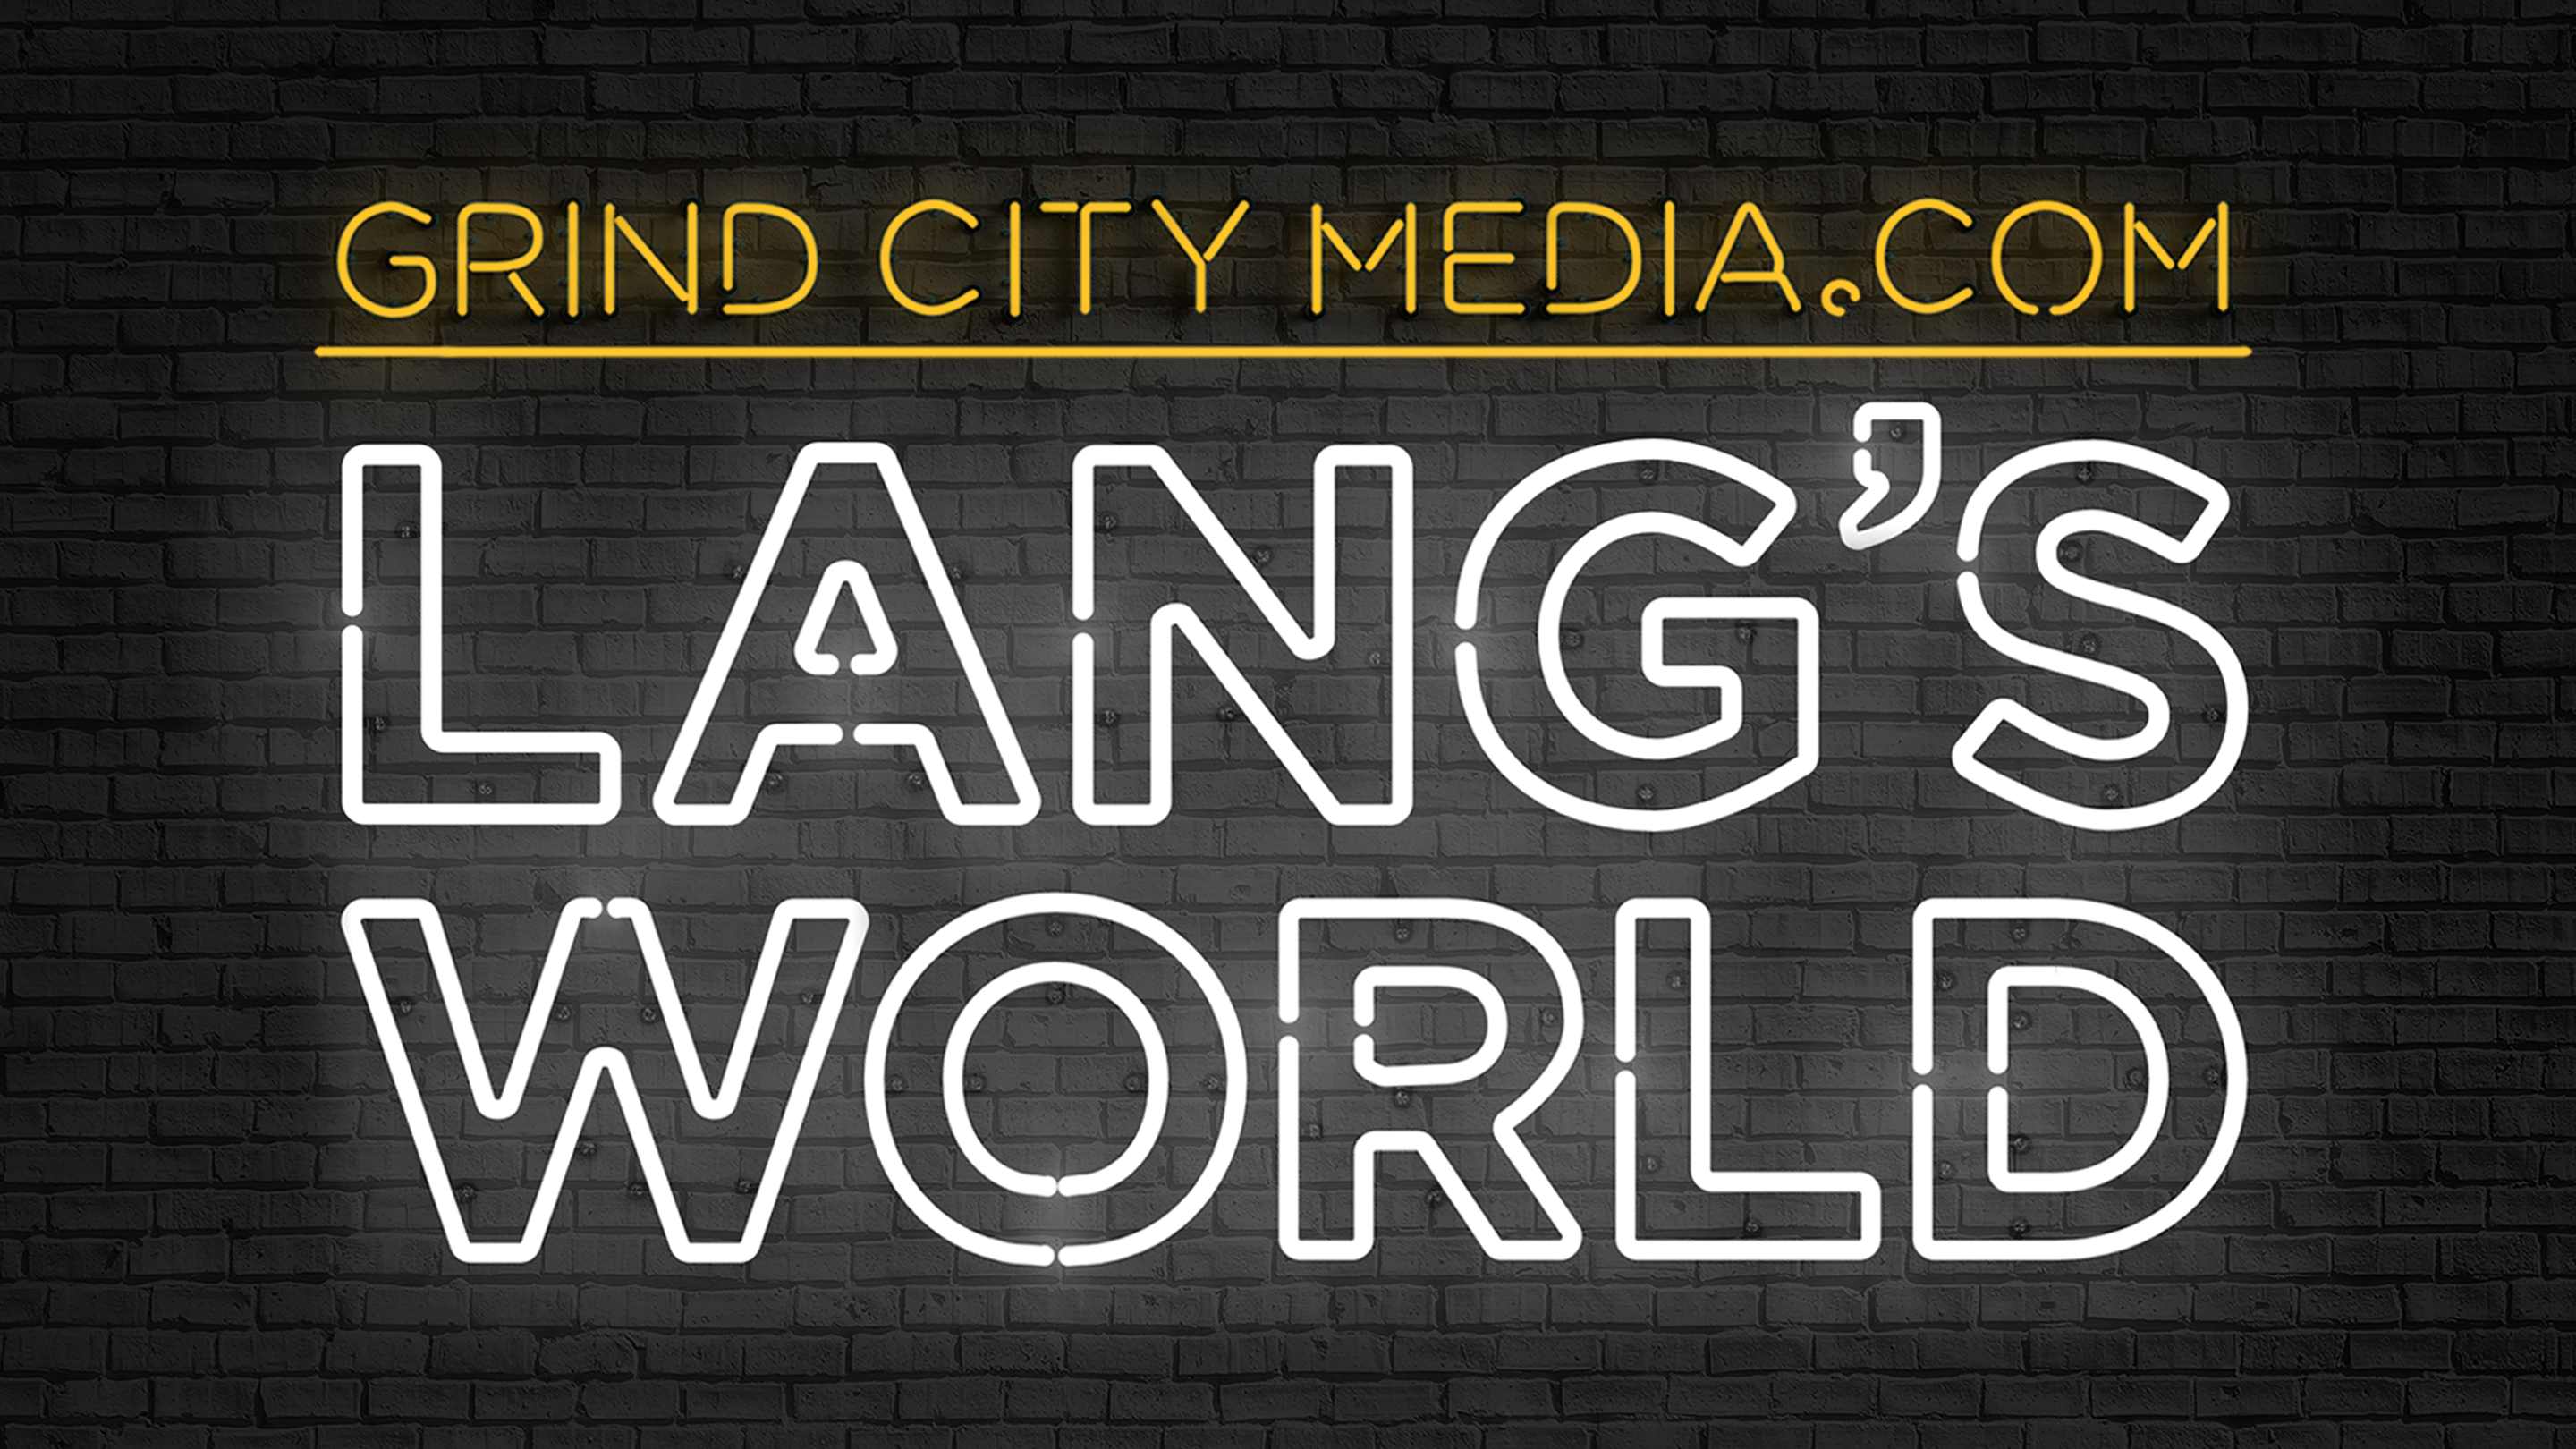 GCM_Lang's World_1920x1080